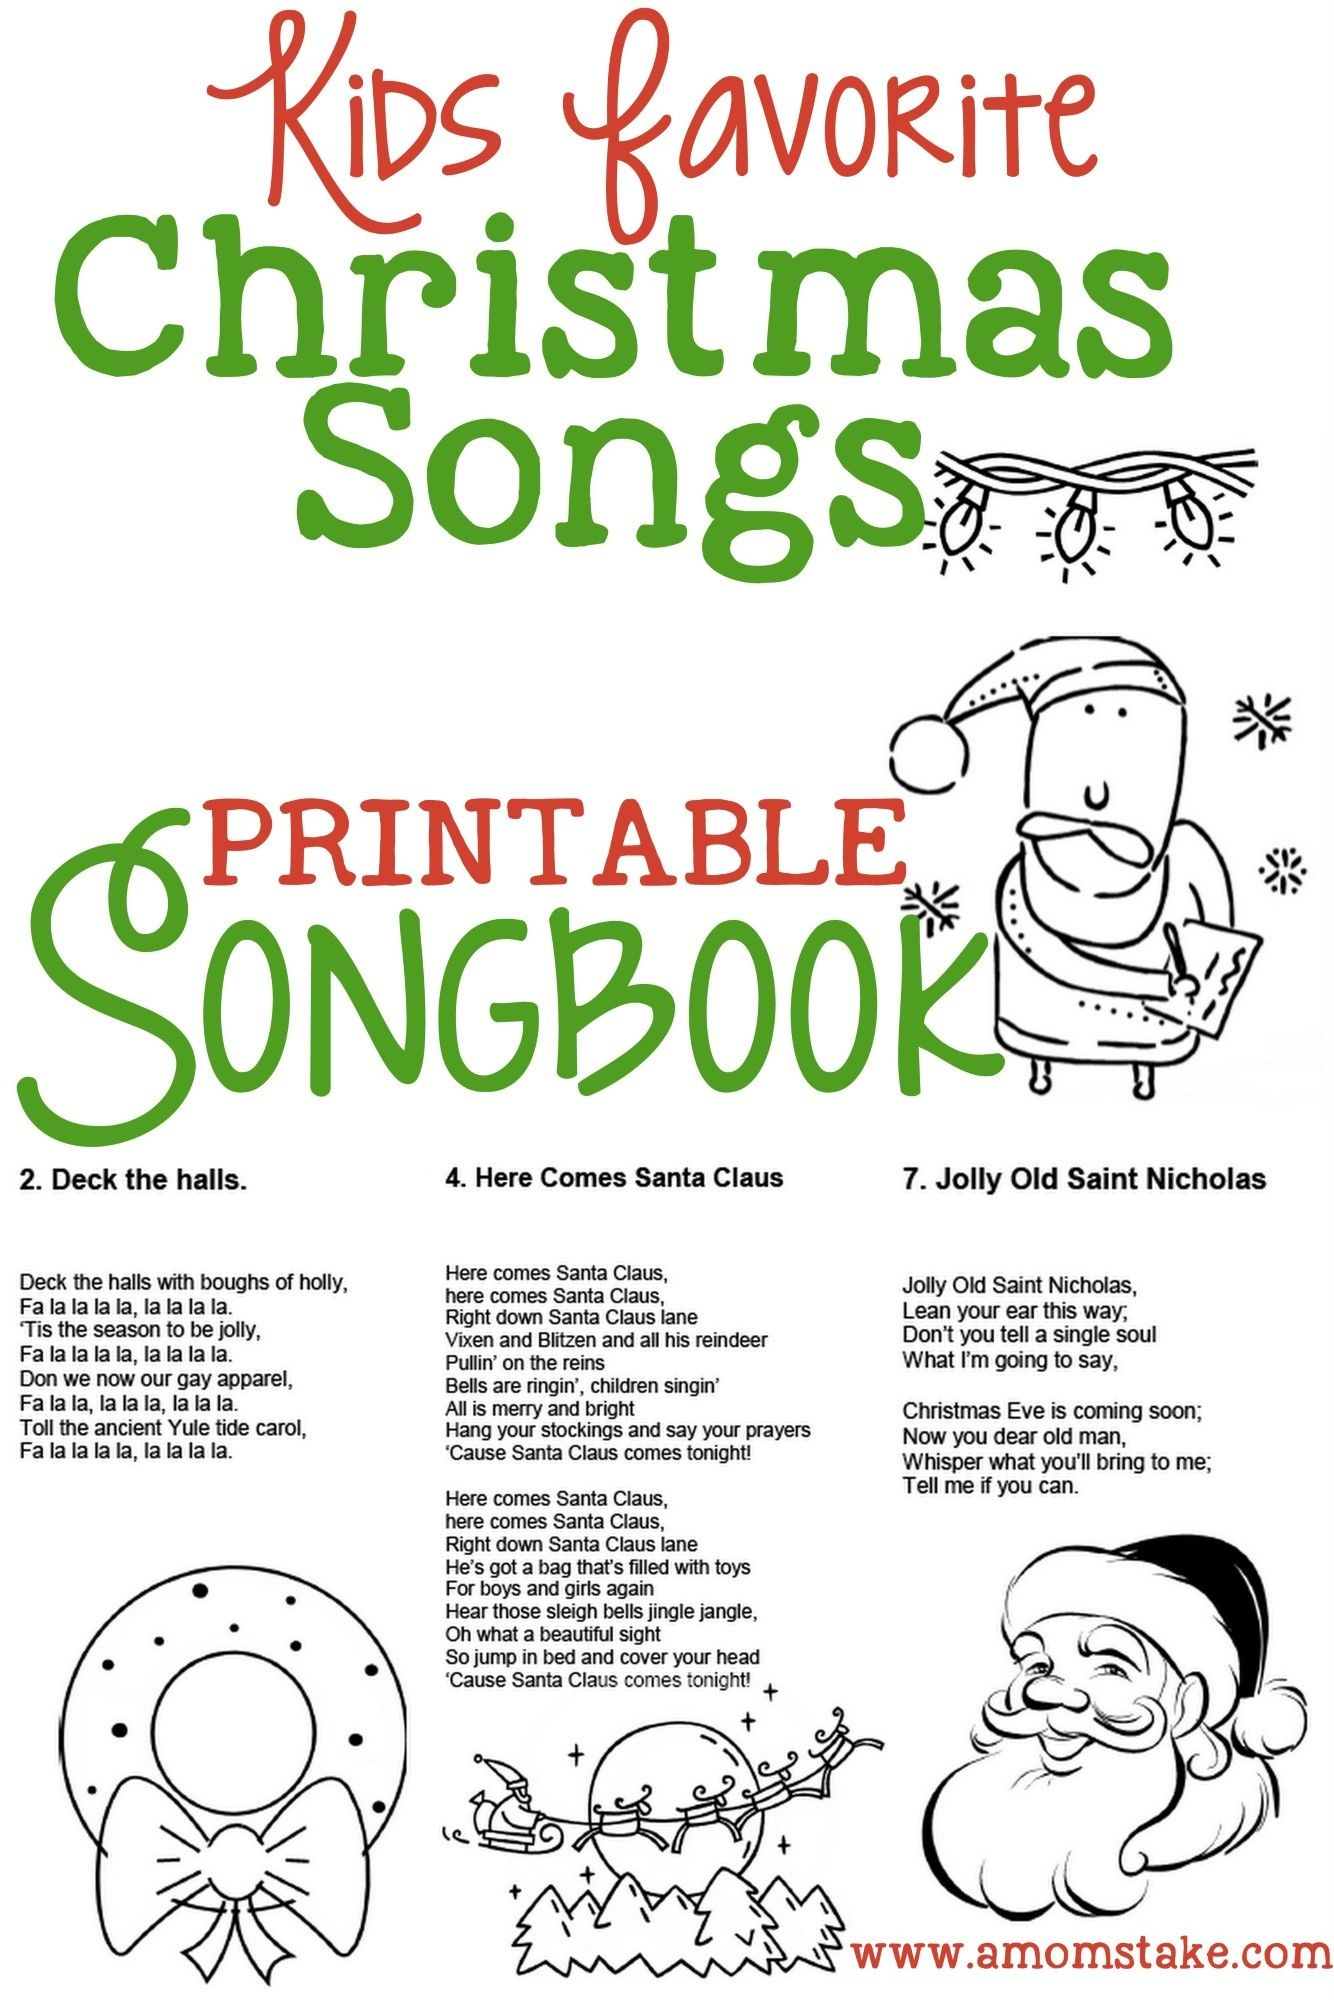 Christmas Songs For Kids – Free Printable Songbook! A Coloring Book - Free Printable Lyrics To Christmas Carols